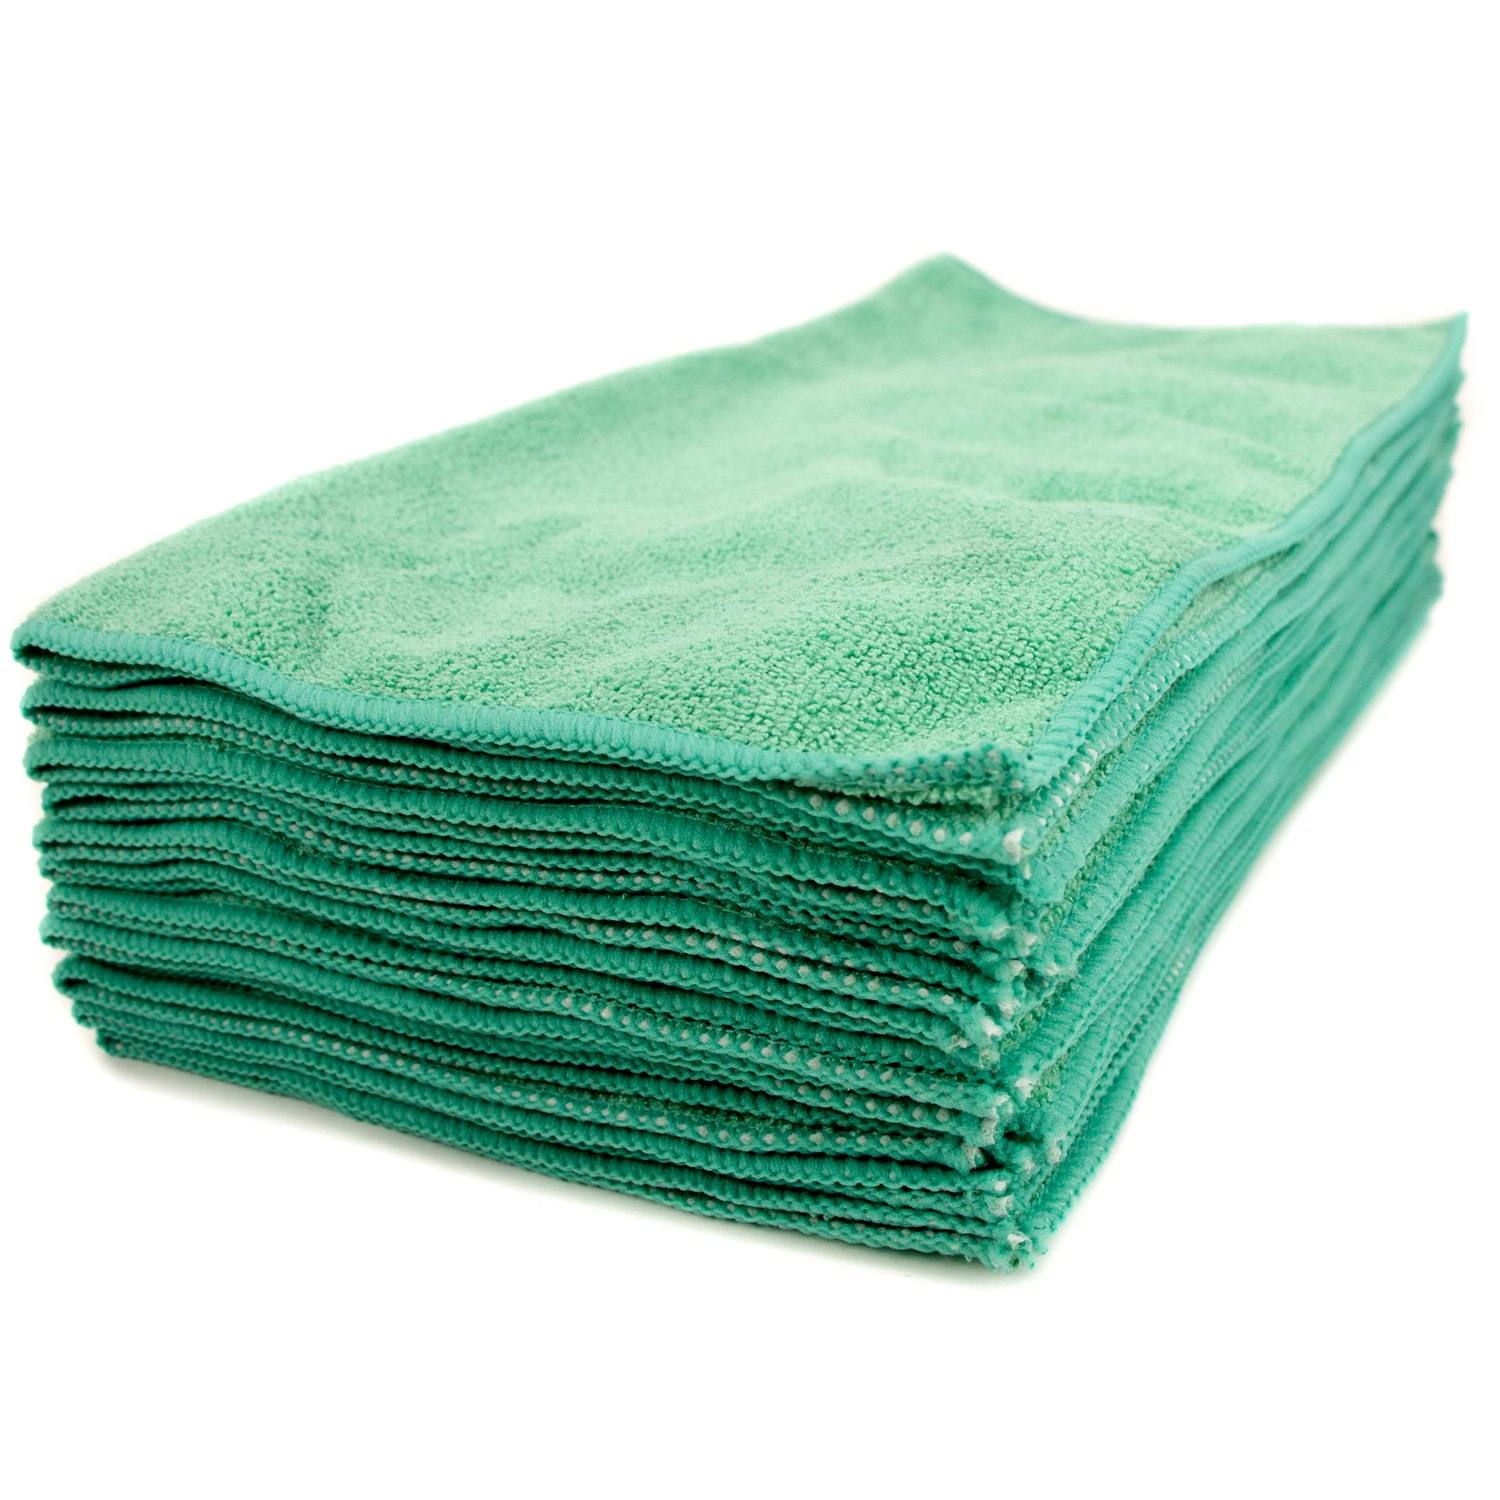 Green Microfiber Cleaning Towel 16 X 16 Quot Package Of 12